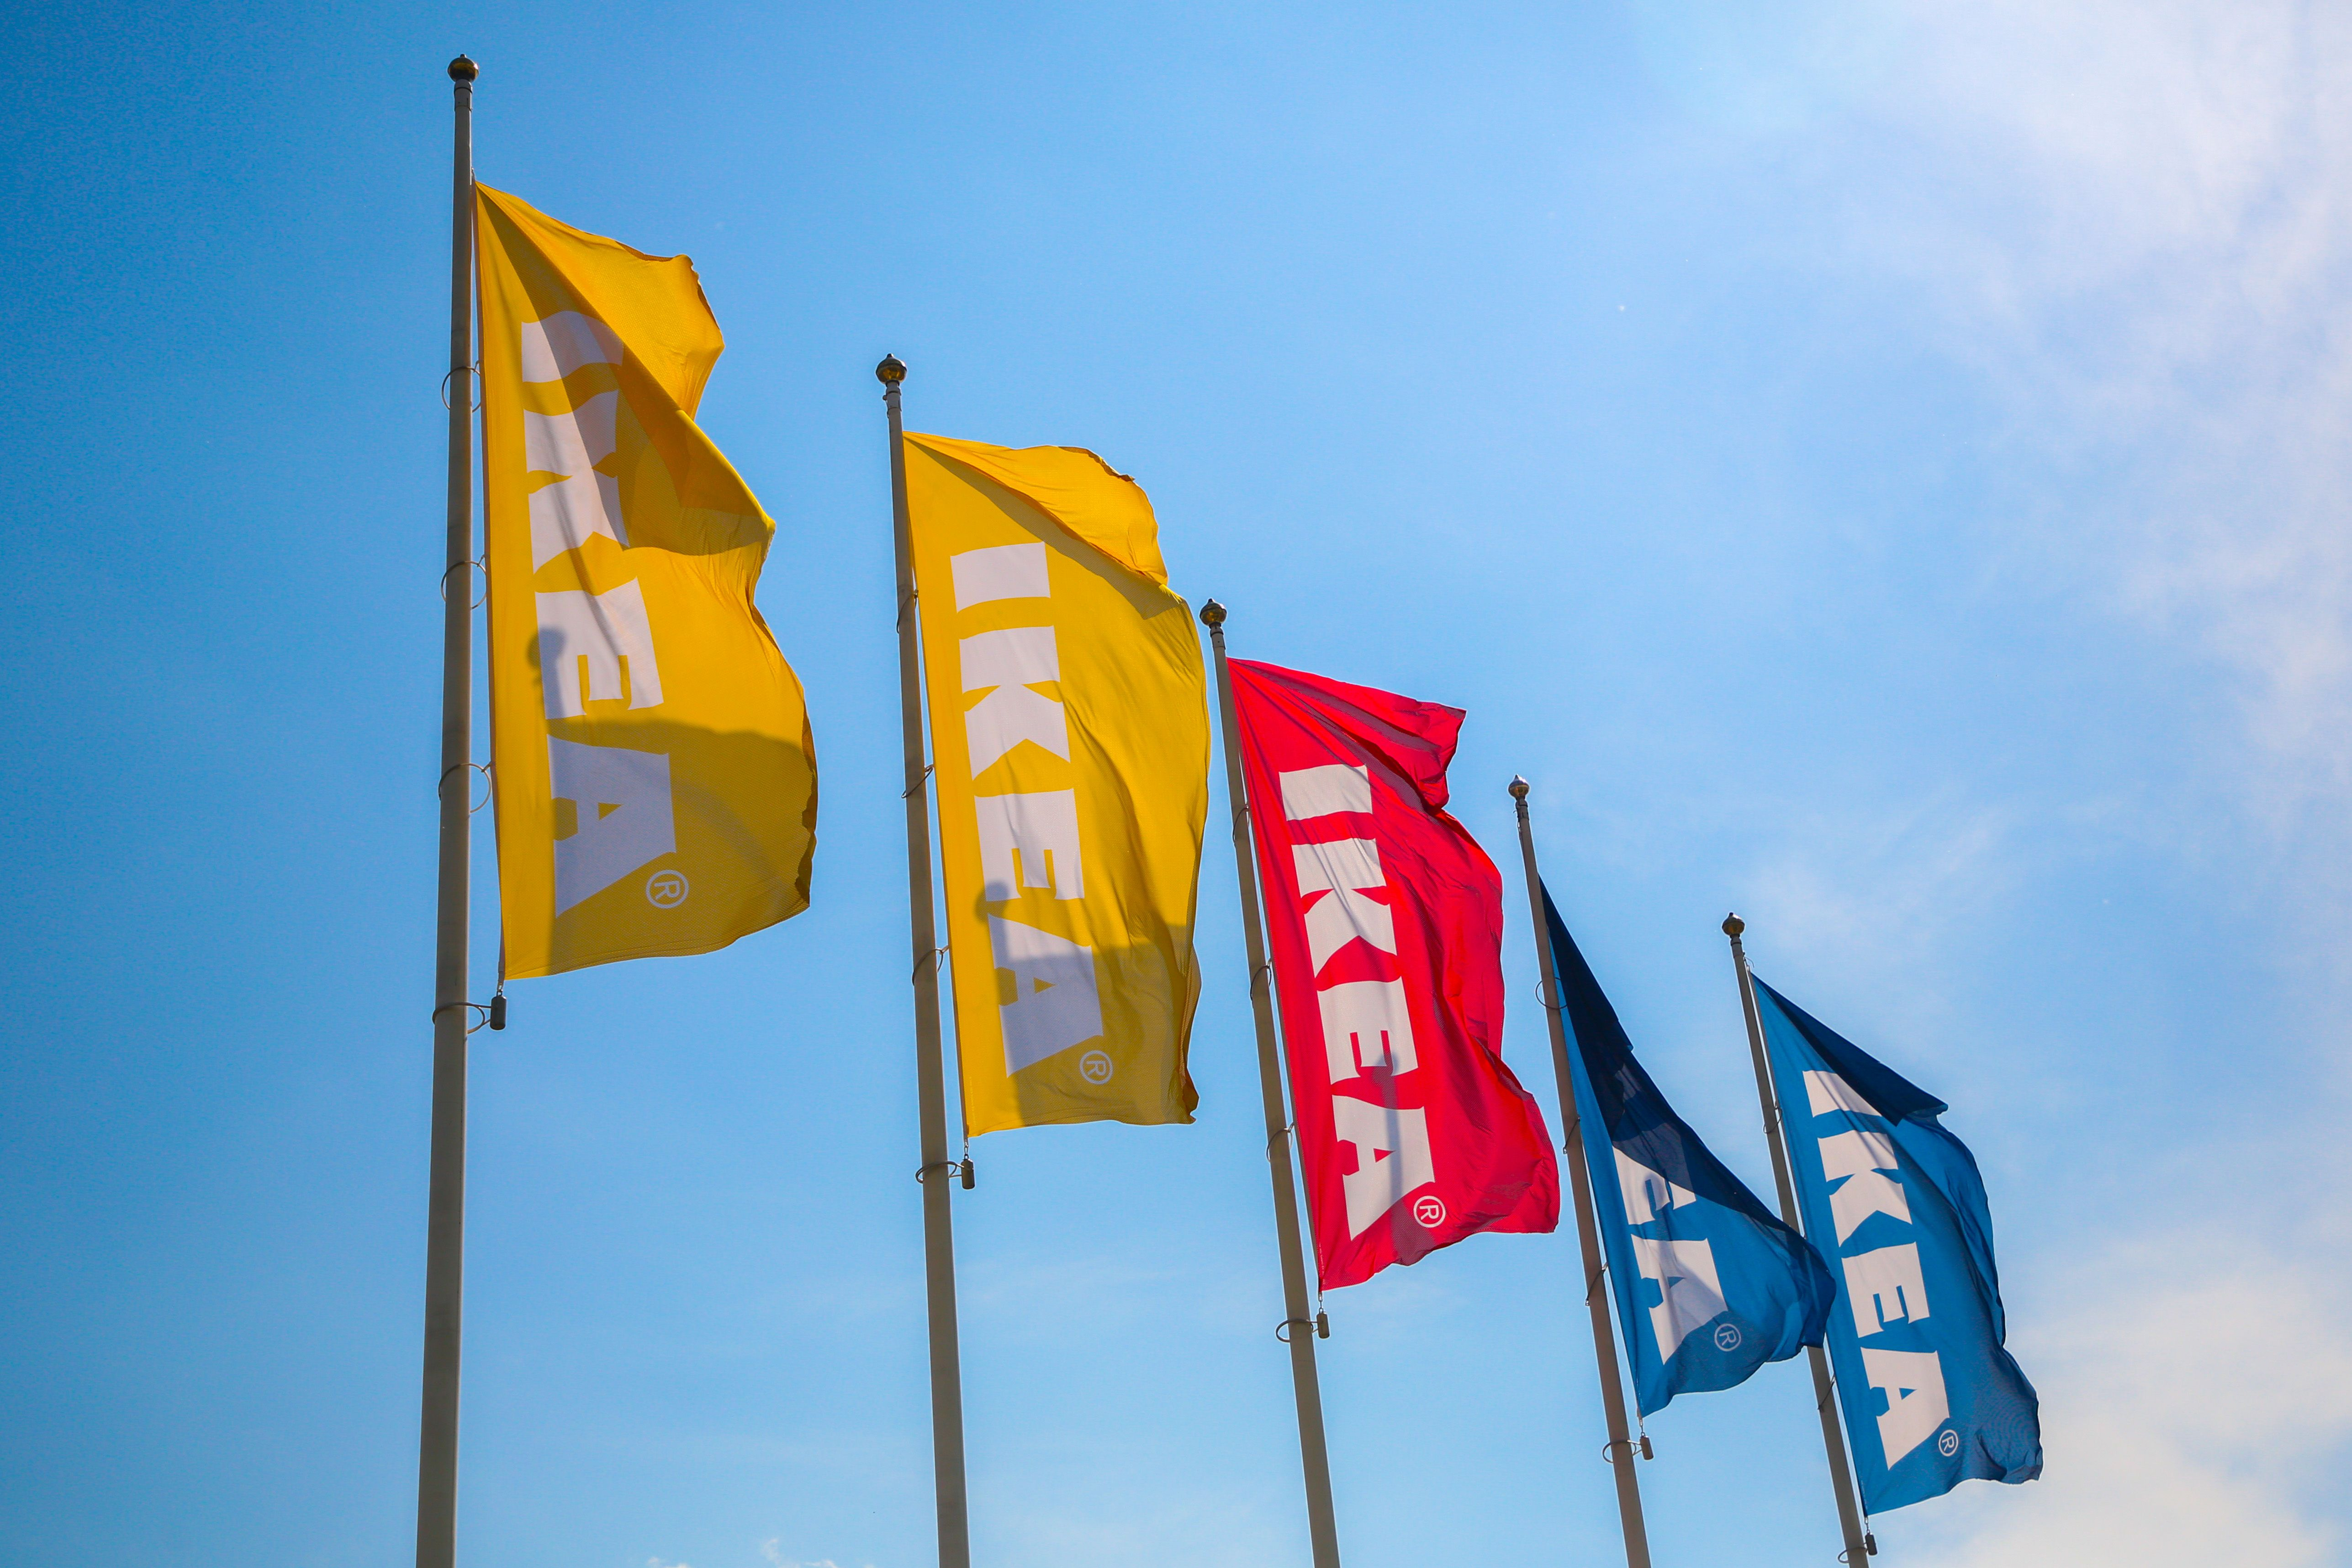 IKEA plans to sell spare furniture parts in sustainability commitment push